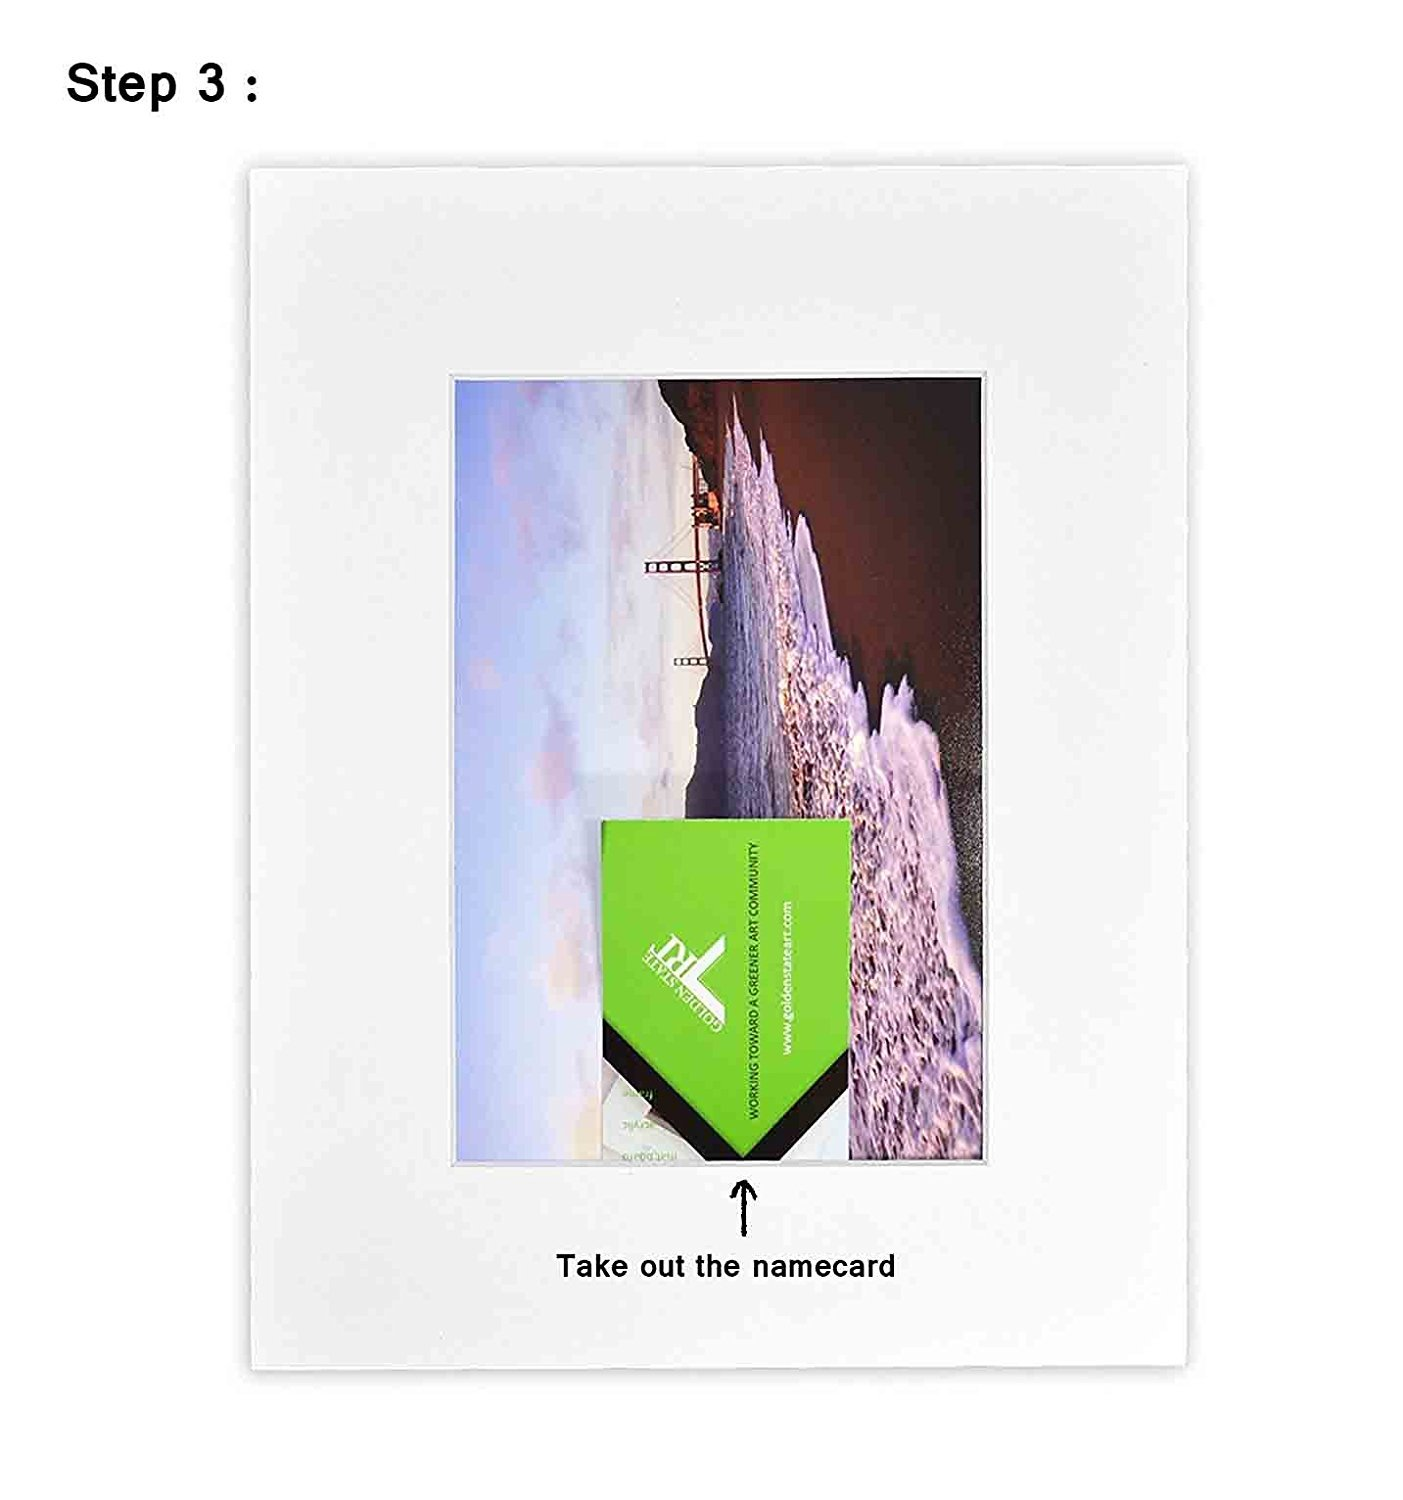 Includes 10 Clear Bags Golden State Art Pack of 10 White 8x10 Slip-in Pre-Adhesive Photo Mat for 5x7 Picture with Backing Board pre-Assembled